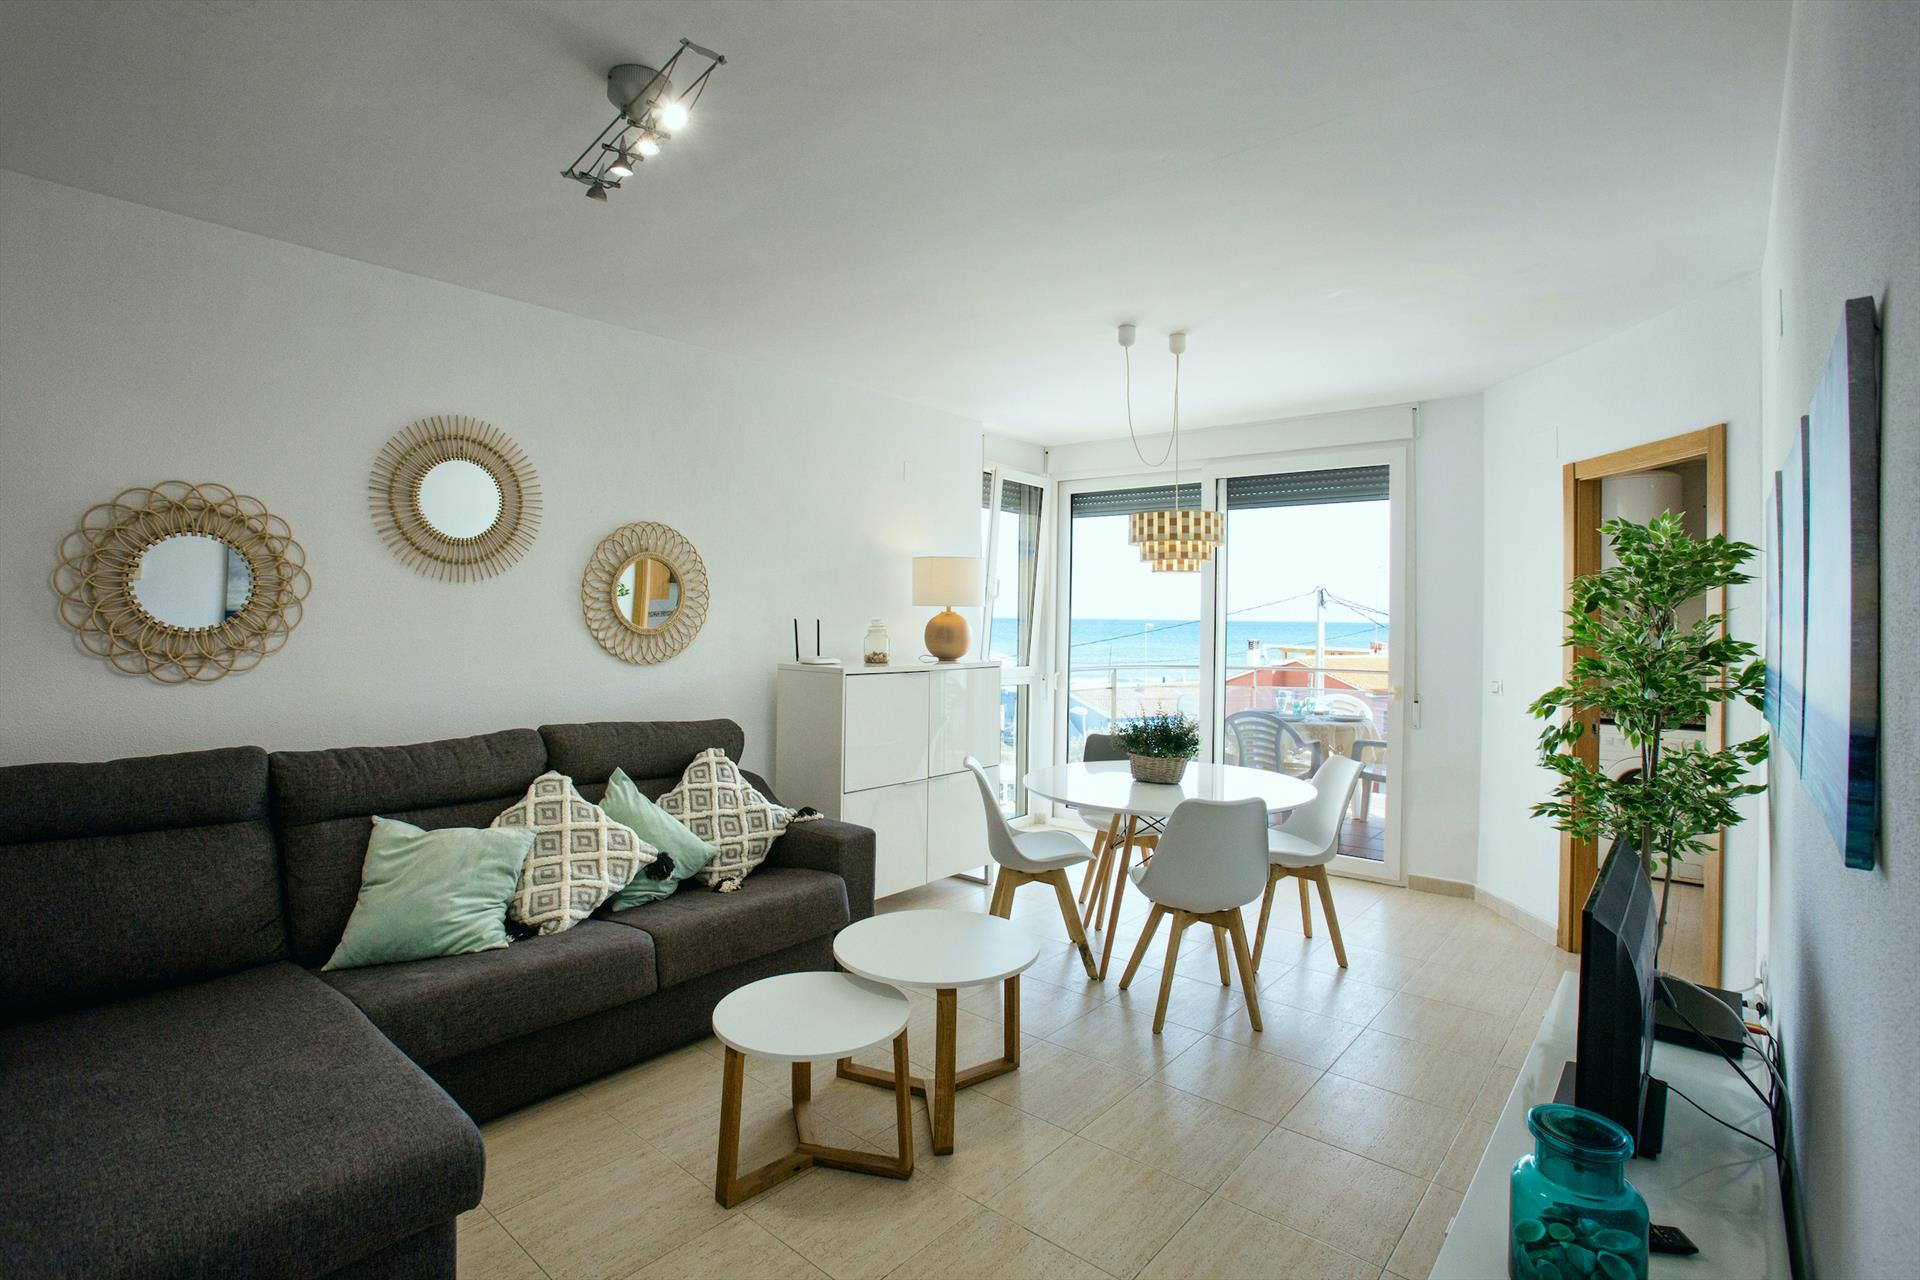 Zurich 47, Apartment  with communal pool in Denia, on the Costa Blanca, Spain for 4 persons.....